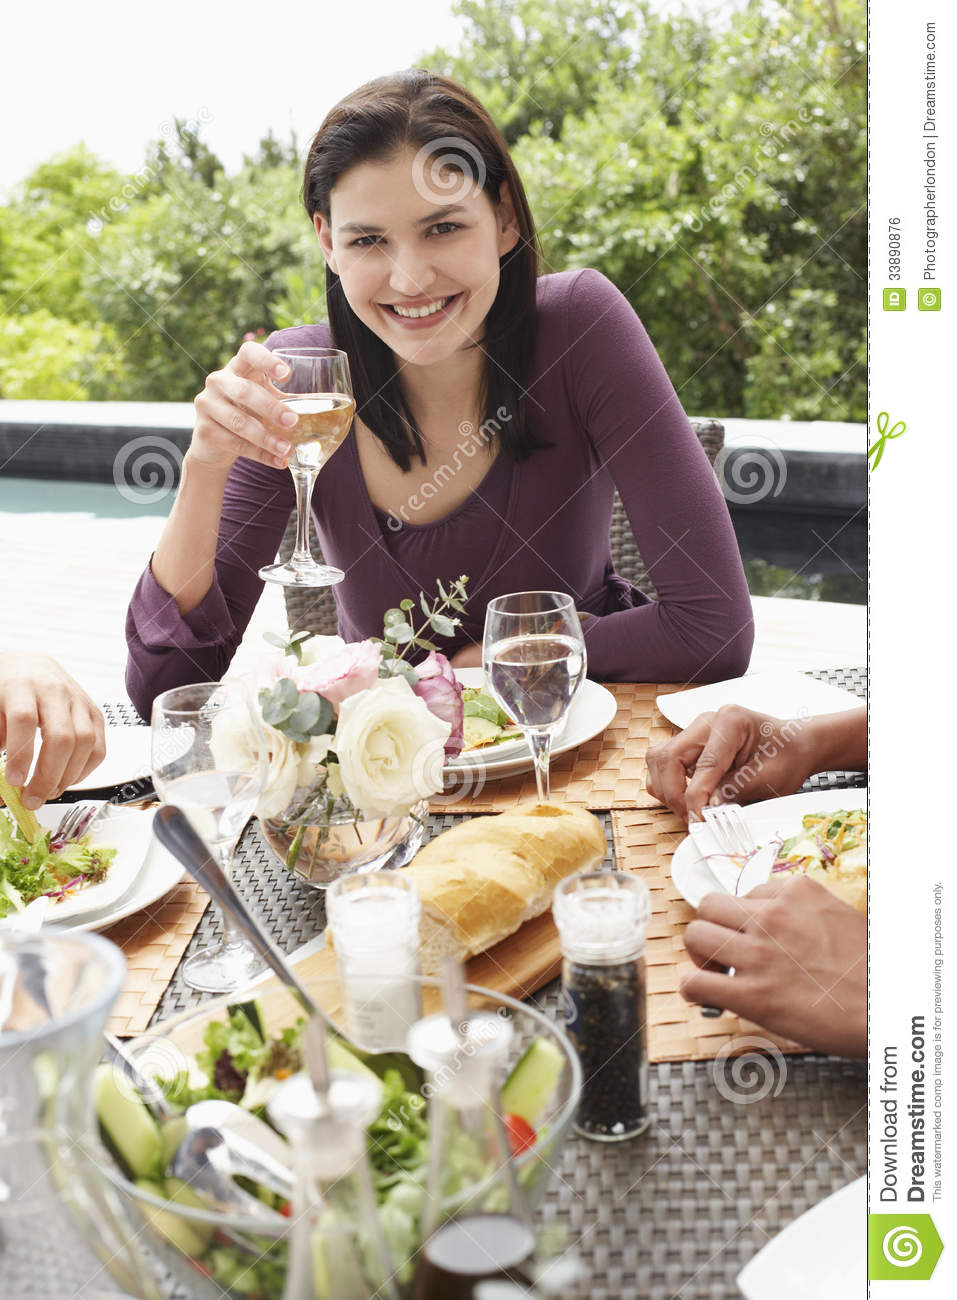 The Dinner Party Literary Analysis Essay